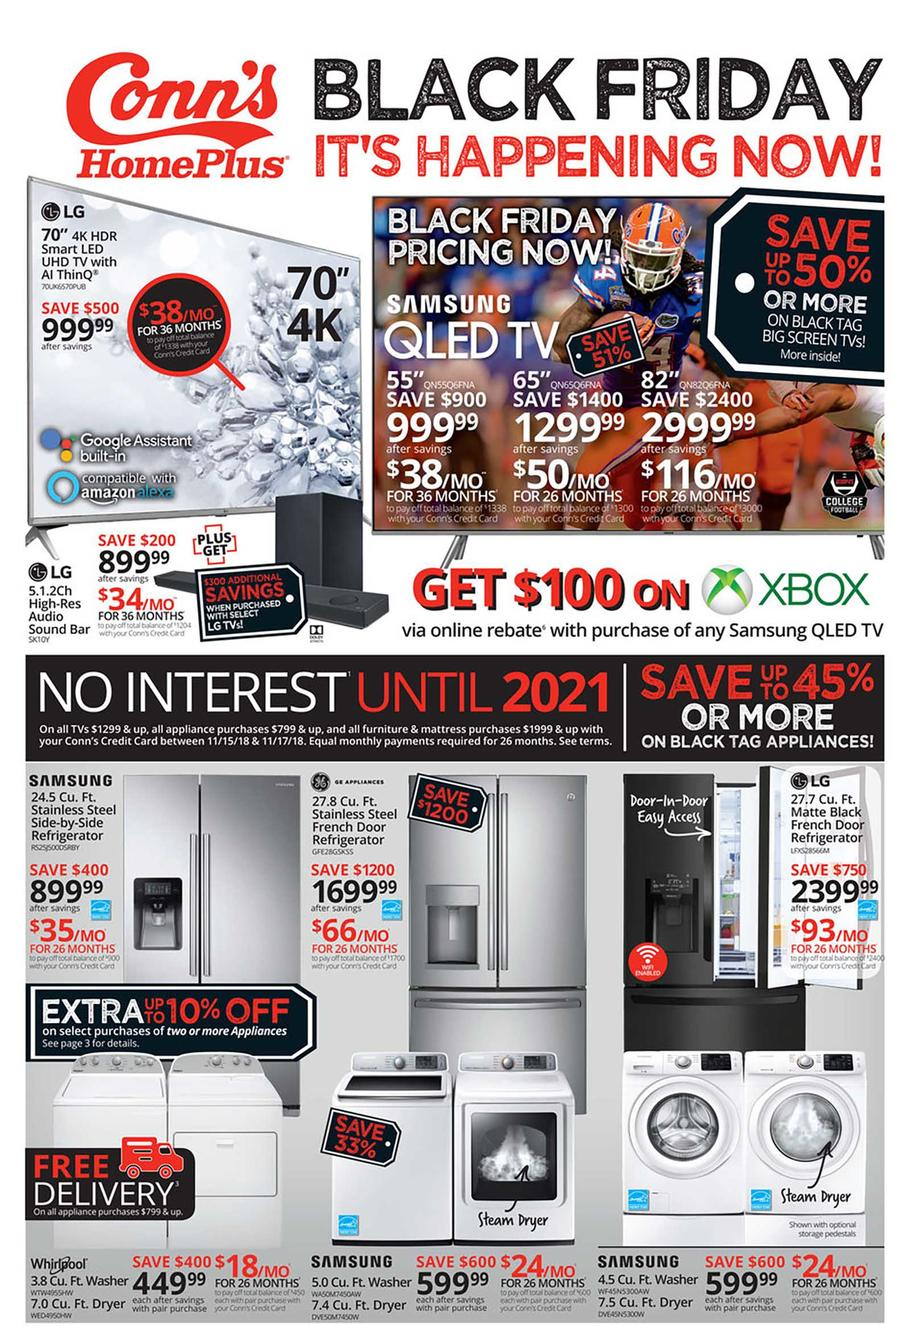 Conn's HomePlus 2018 Black Friday Ad Page 1